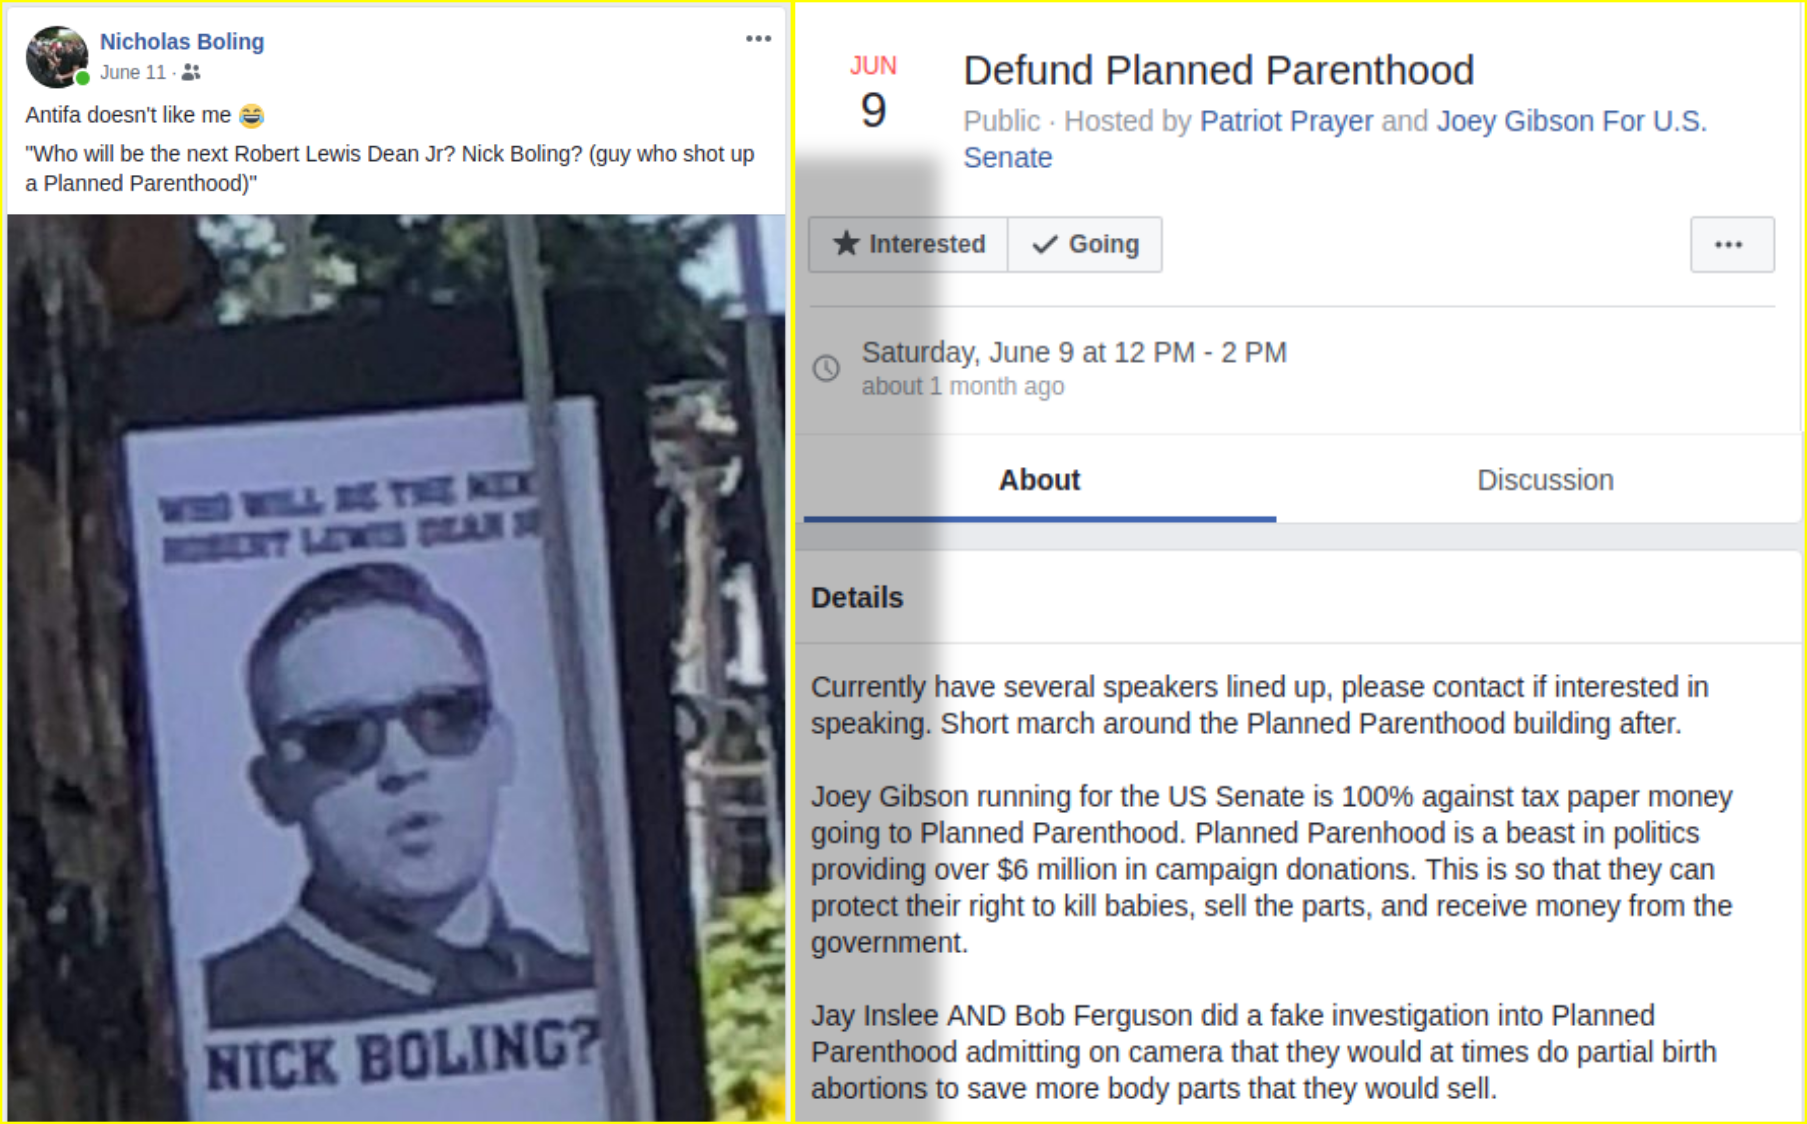 Nick Boling attends an anti-abortion rally using rhetoric that has inspired shootings